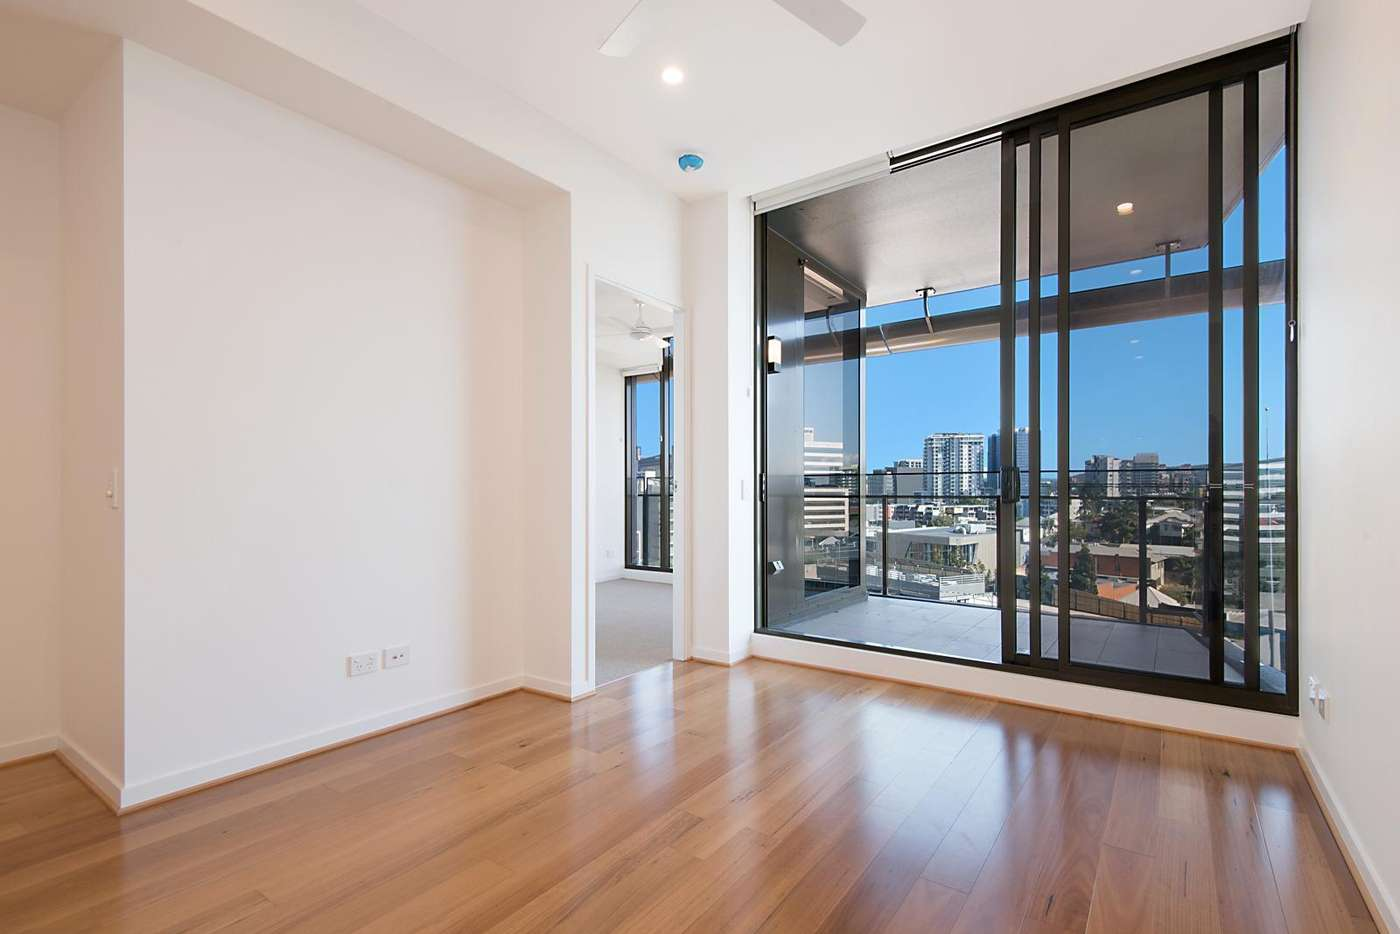 Main view of Homely apartment listing, 40901/1033 Ann Street, Newstead QLD 4006